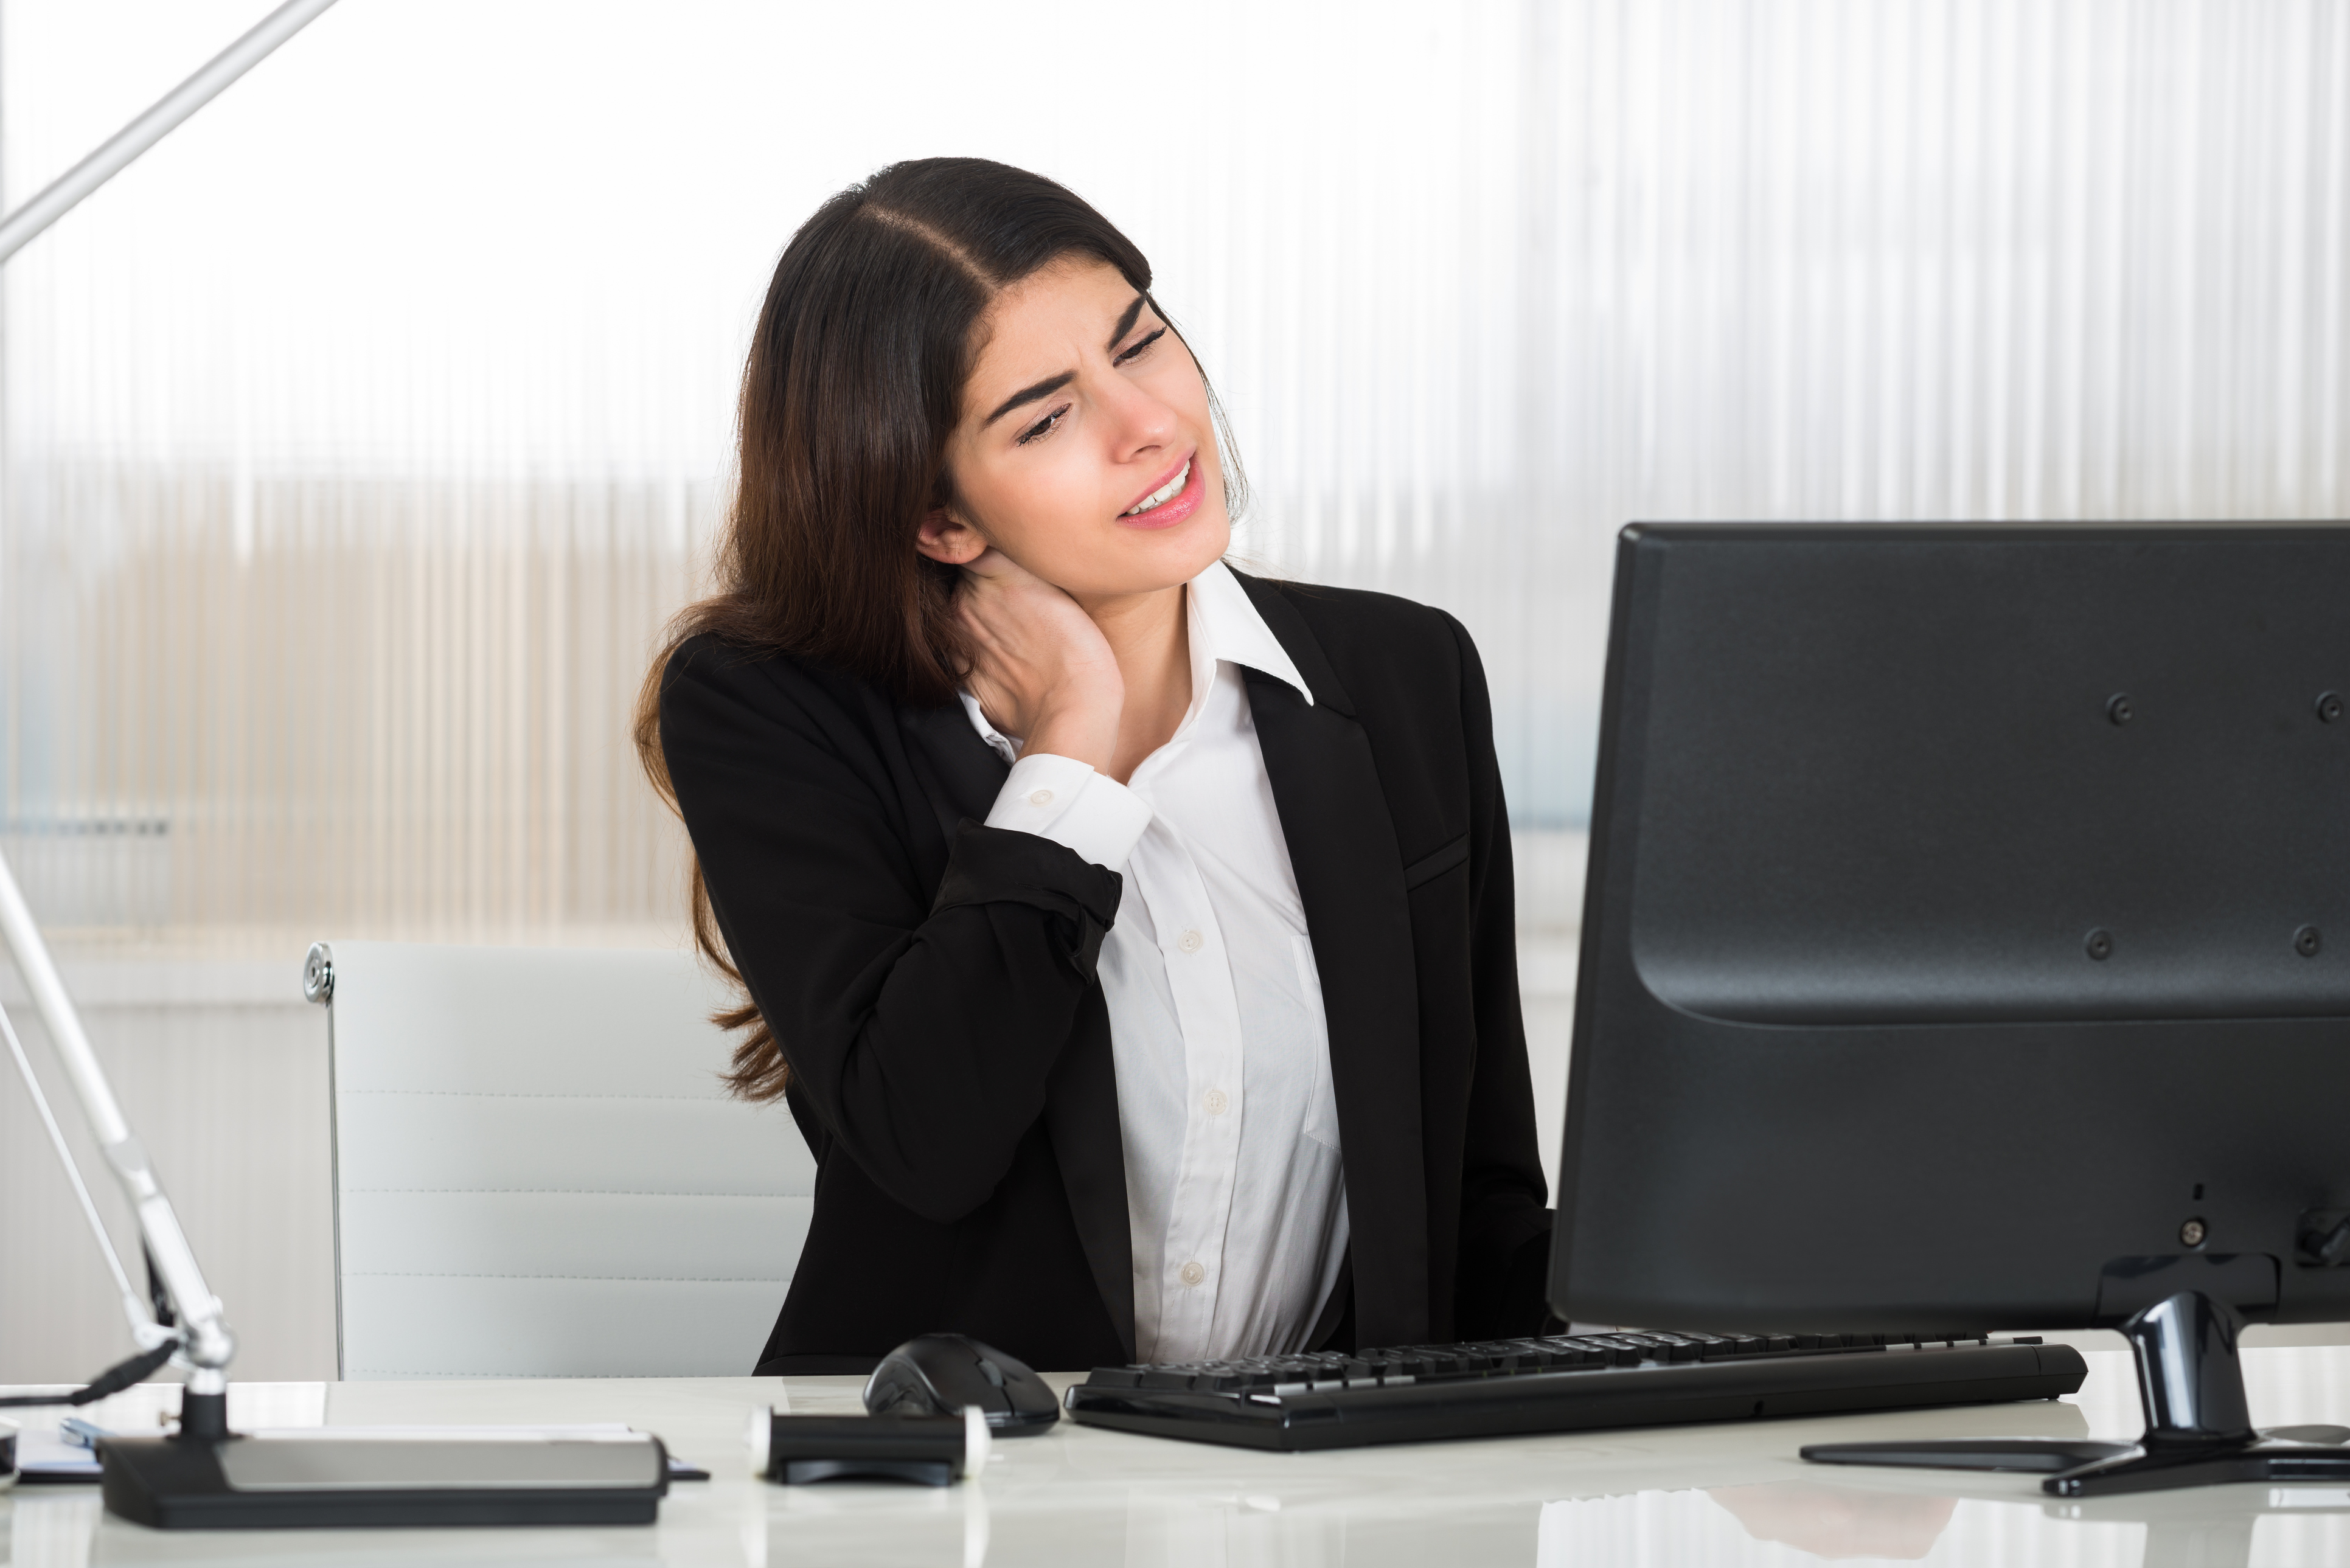 Woman with neck pain from computer posture